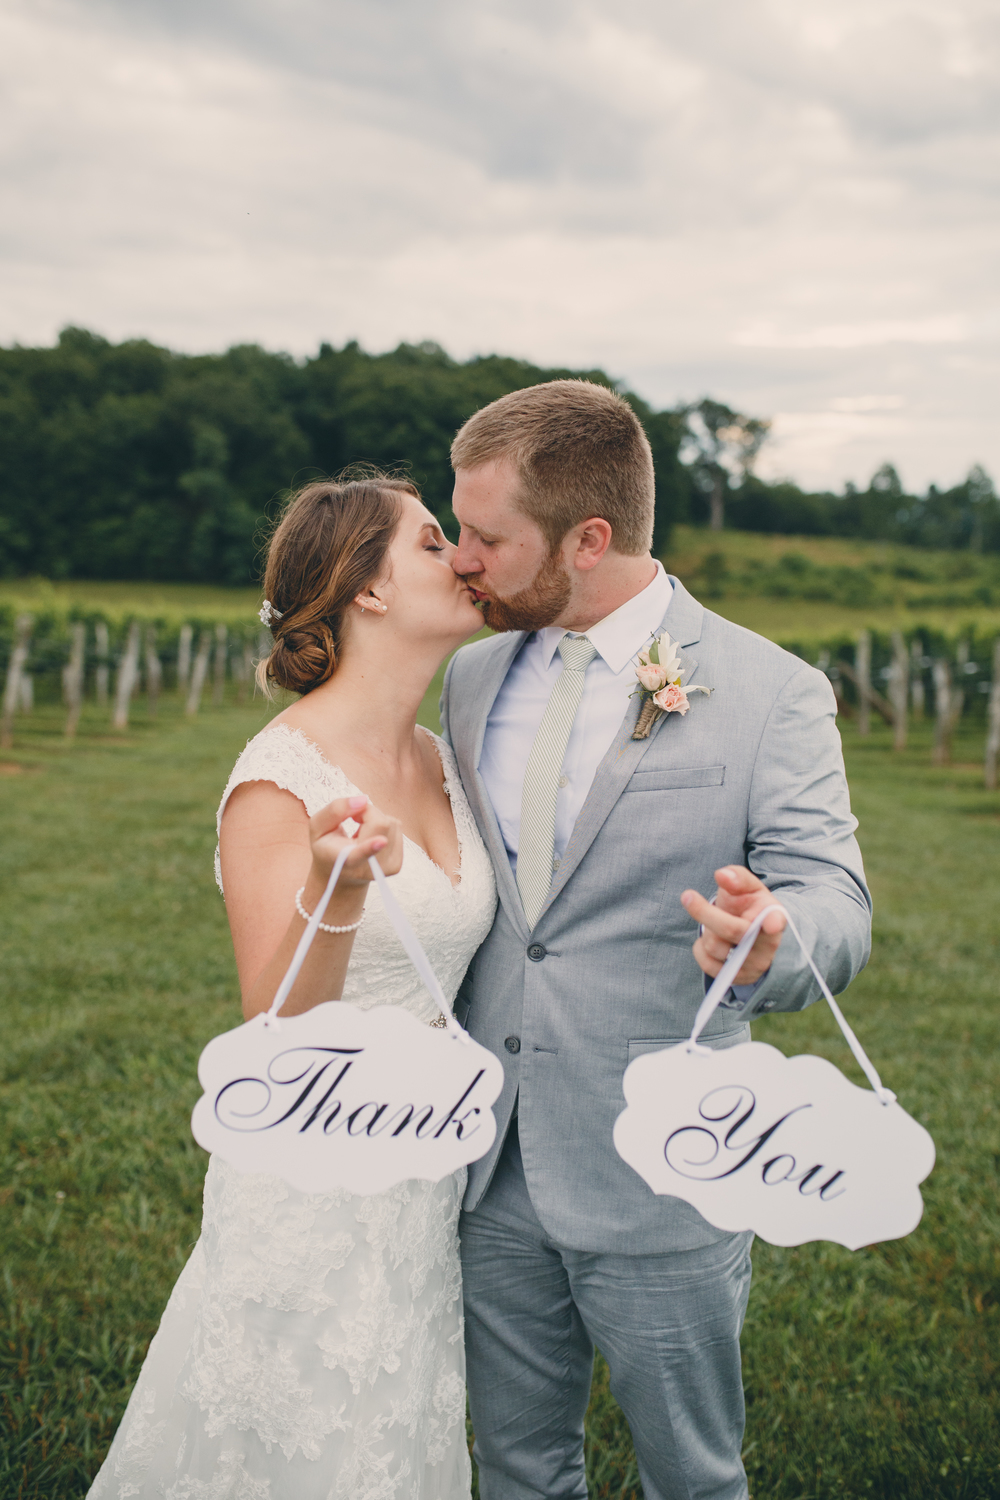 vamountainvineyards-weddings-weddingphotographer-virginia-patcoriphotography(540of800).jpg